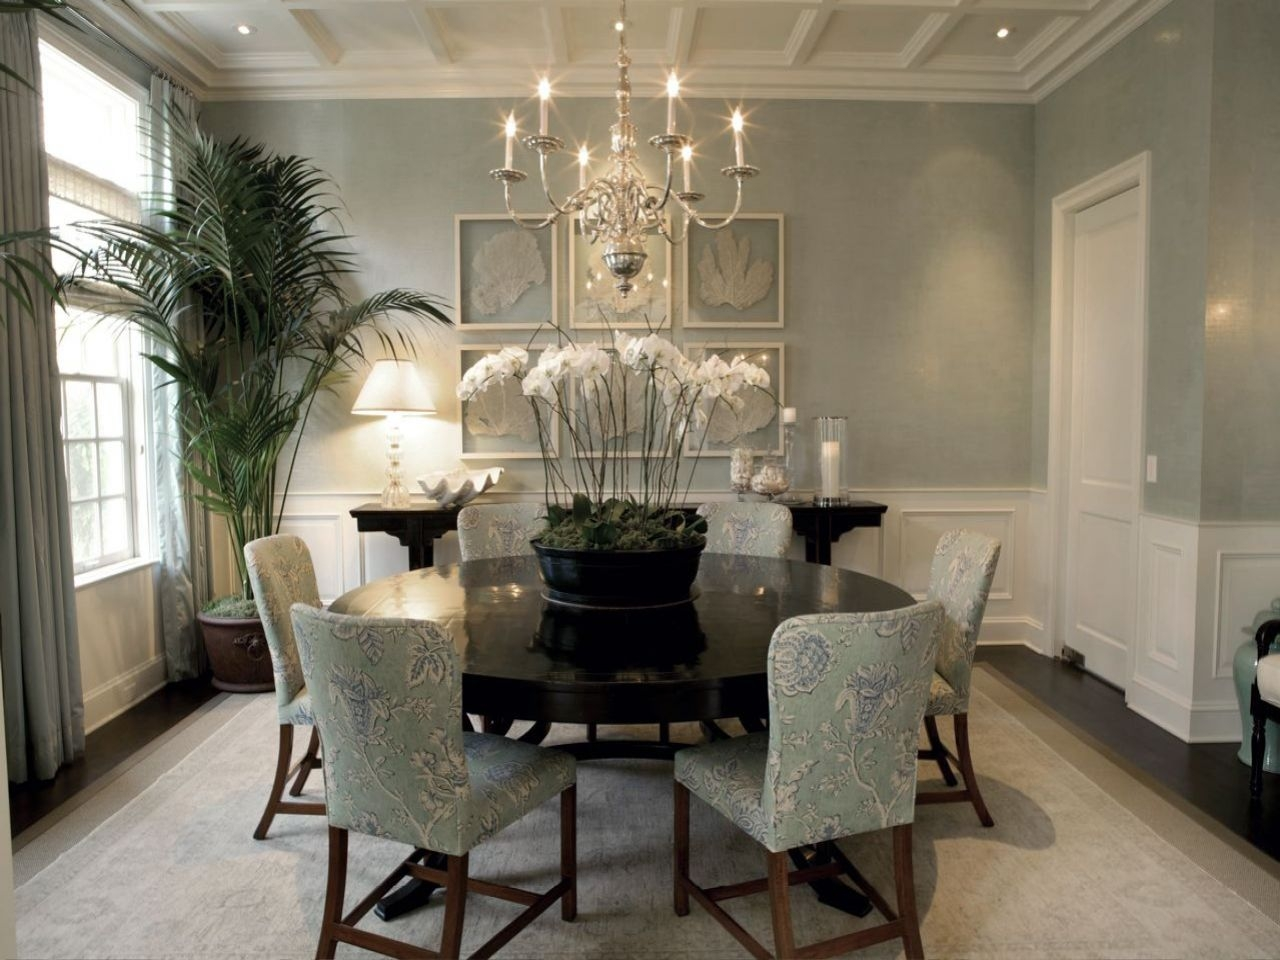 The Color The Elegance The Orchids Dining Room Grey Walls